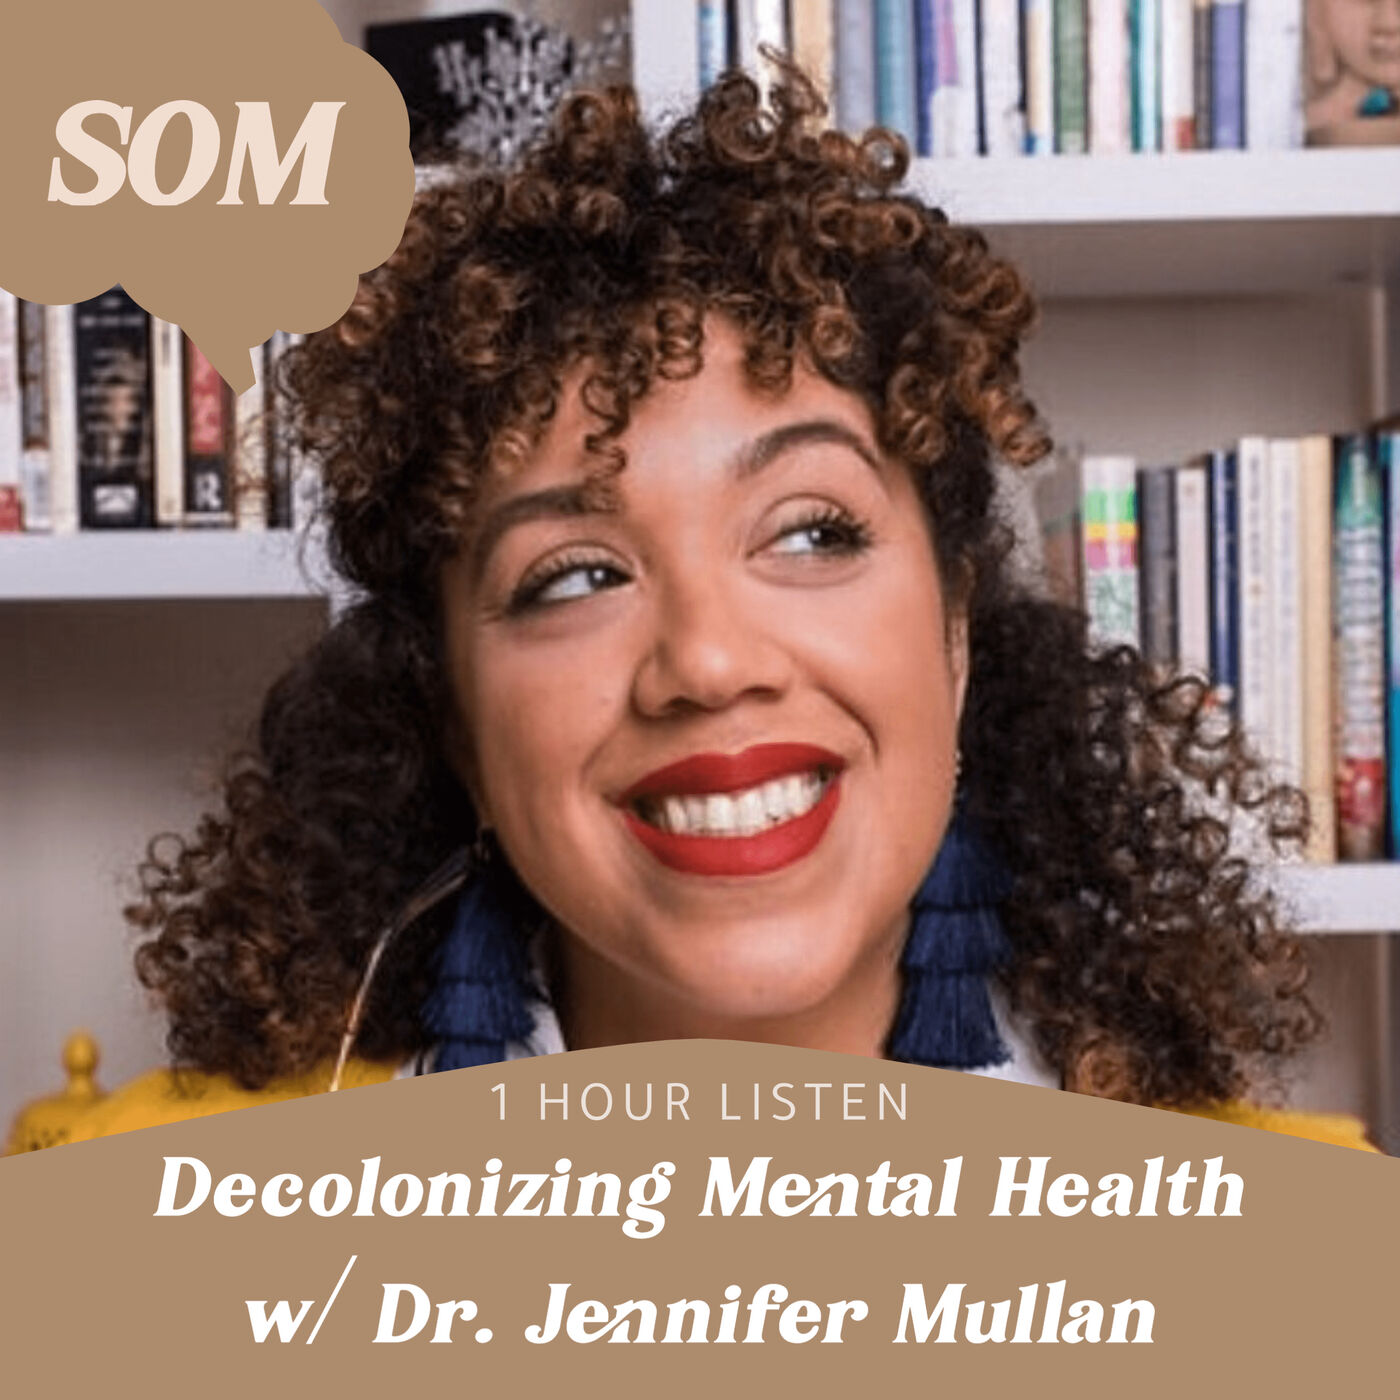 Decolonizing Mental Health w/ Dr. Jennifer Mullan